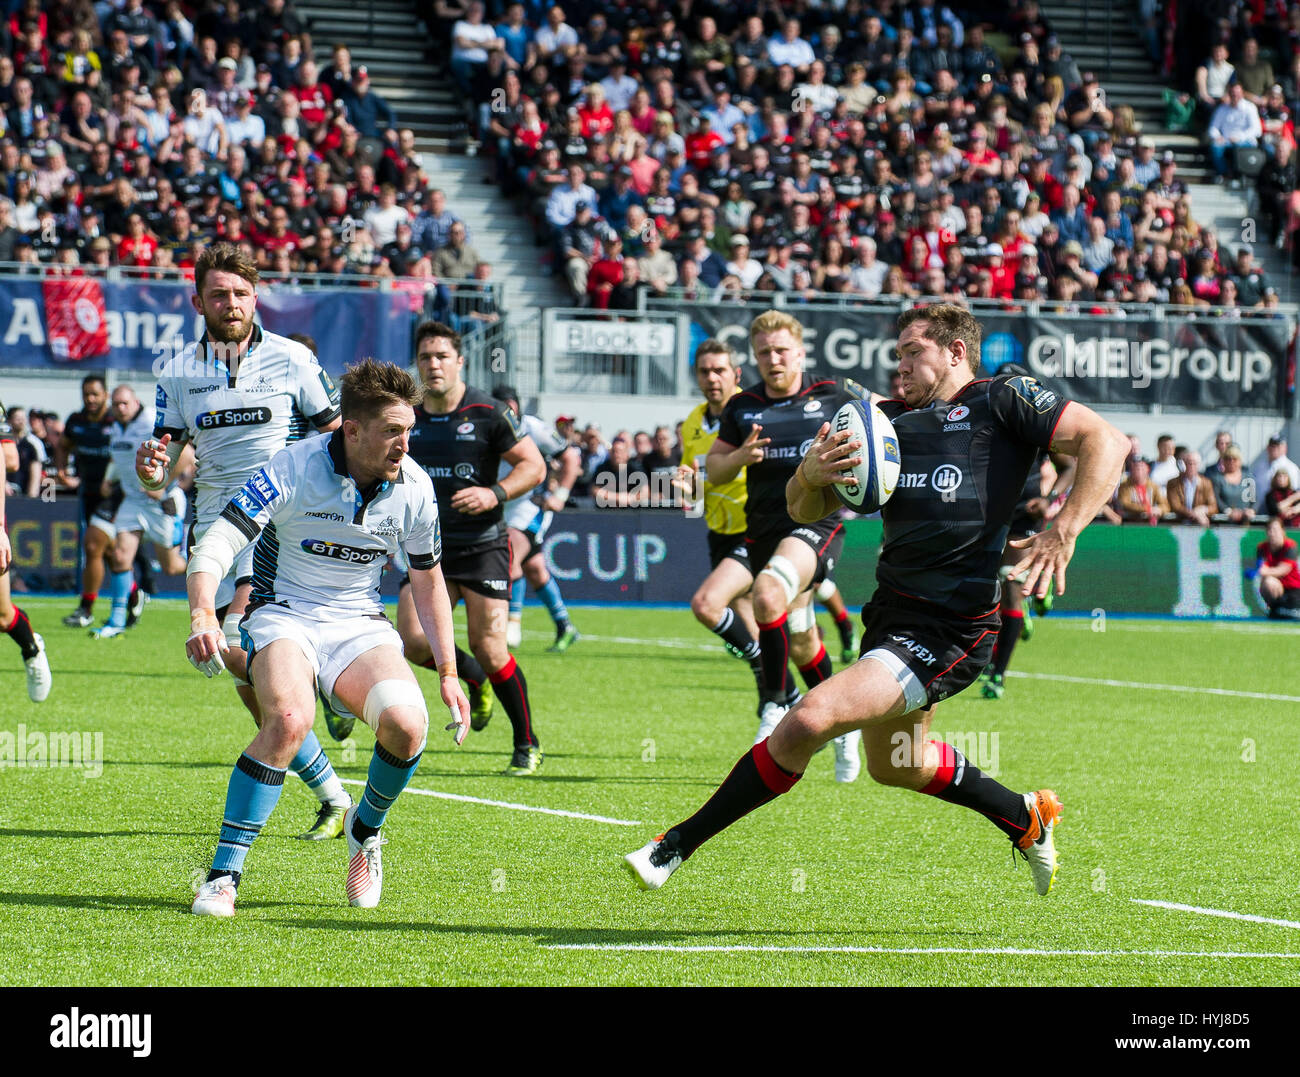 Saracens vs Glasgow Warriors Photo Stock